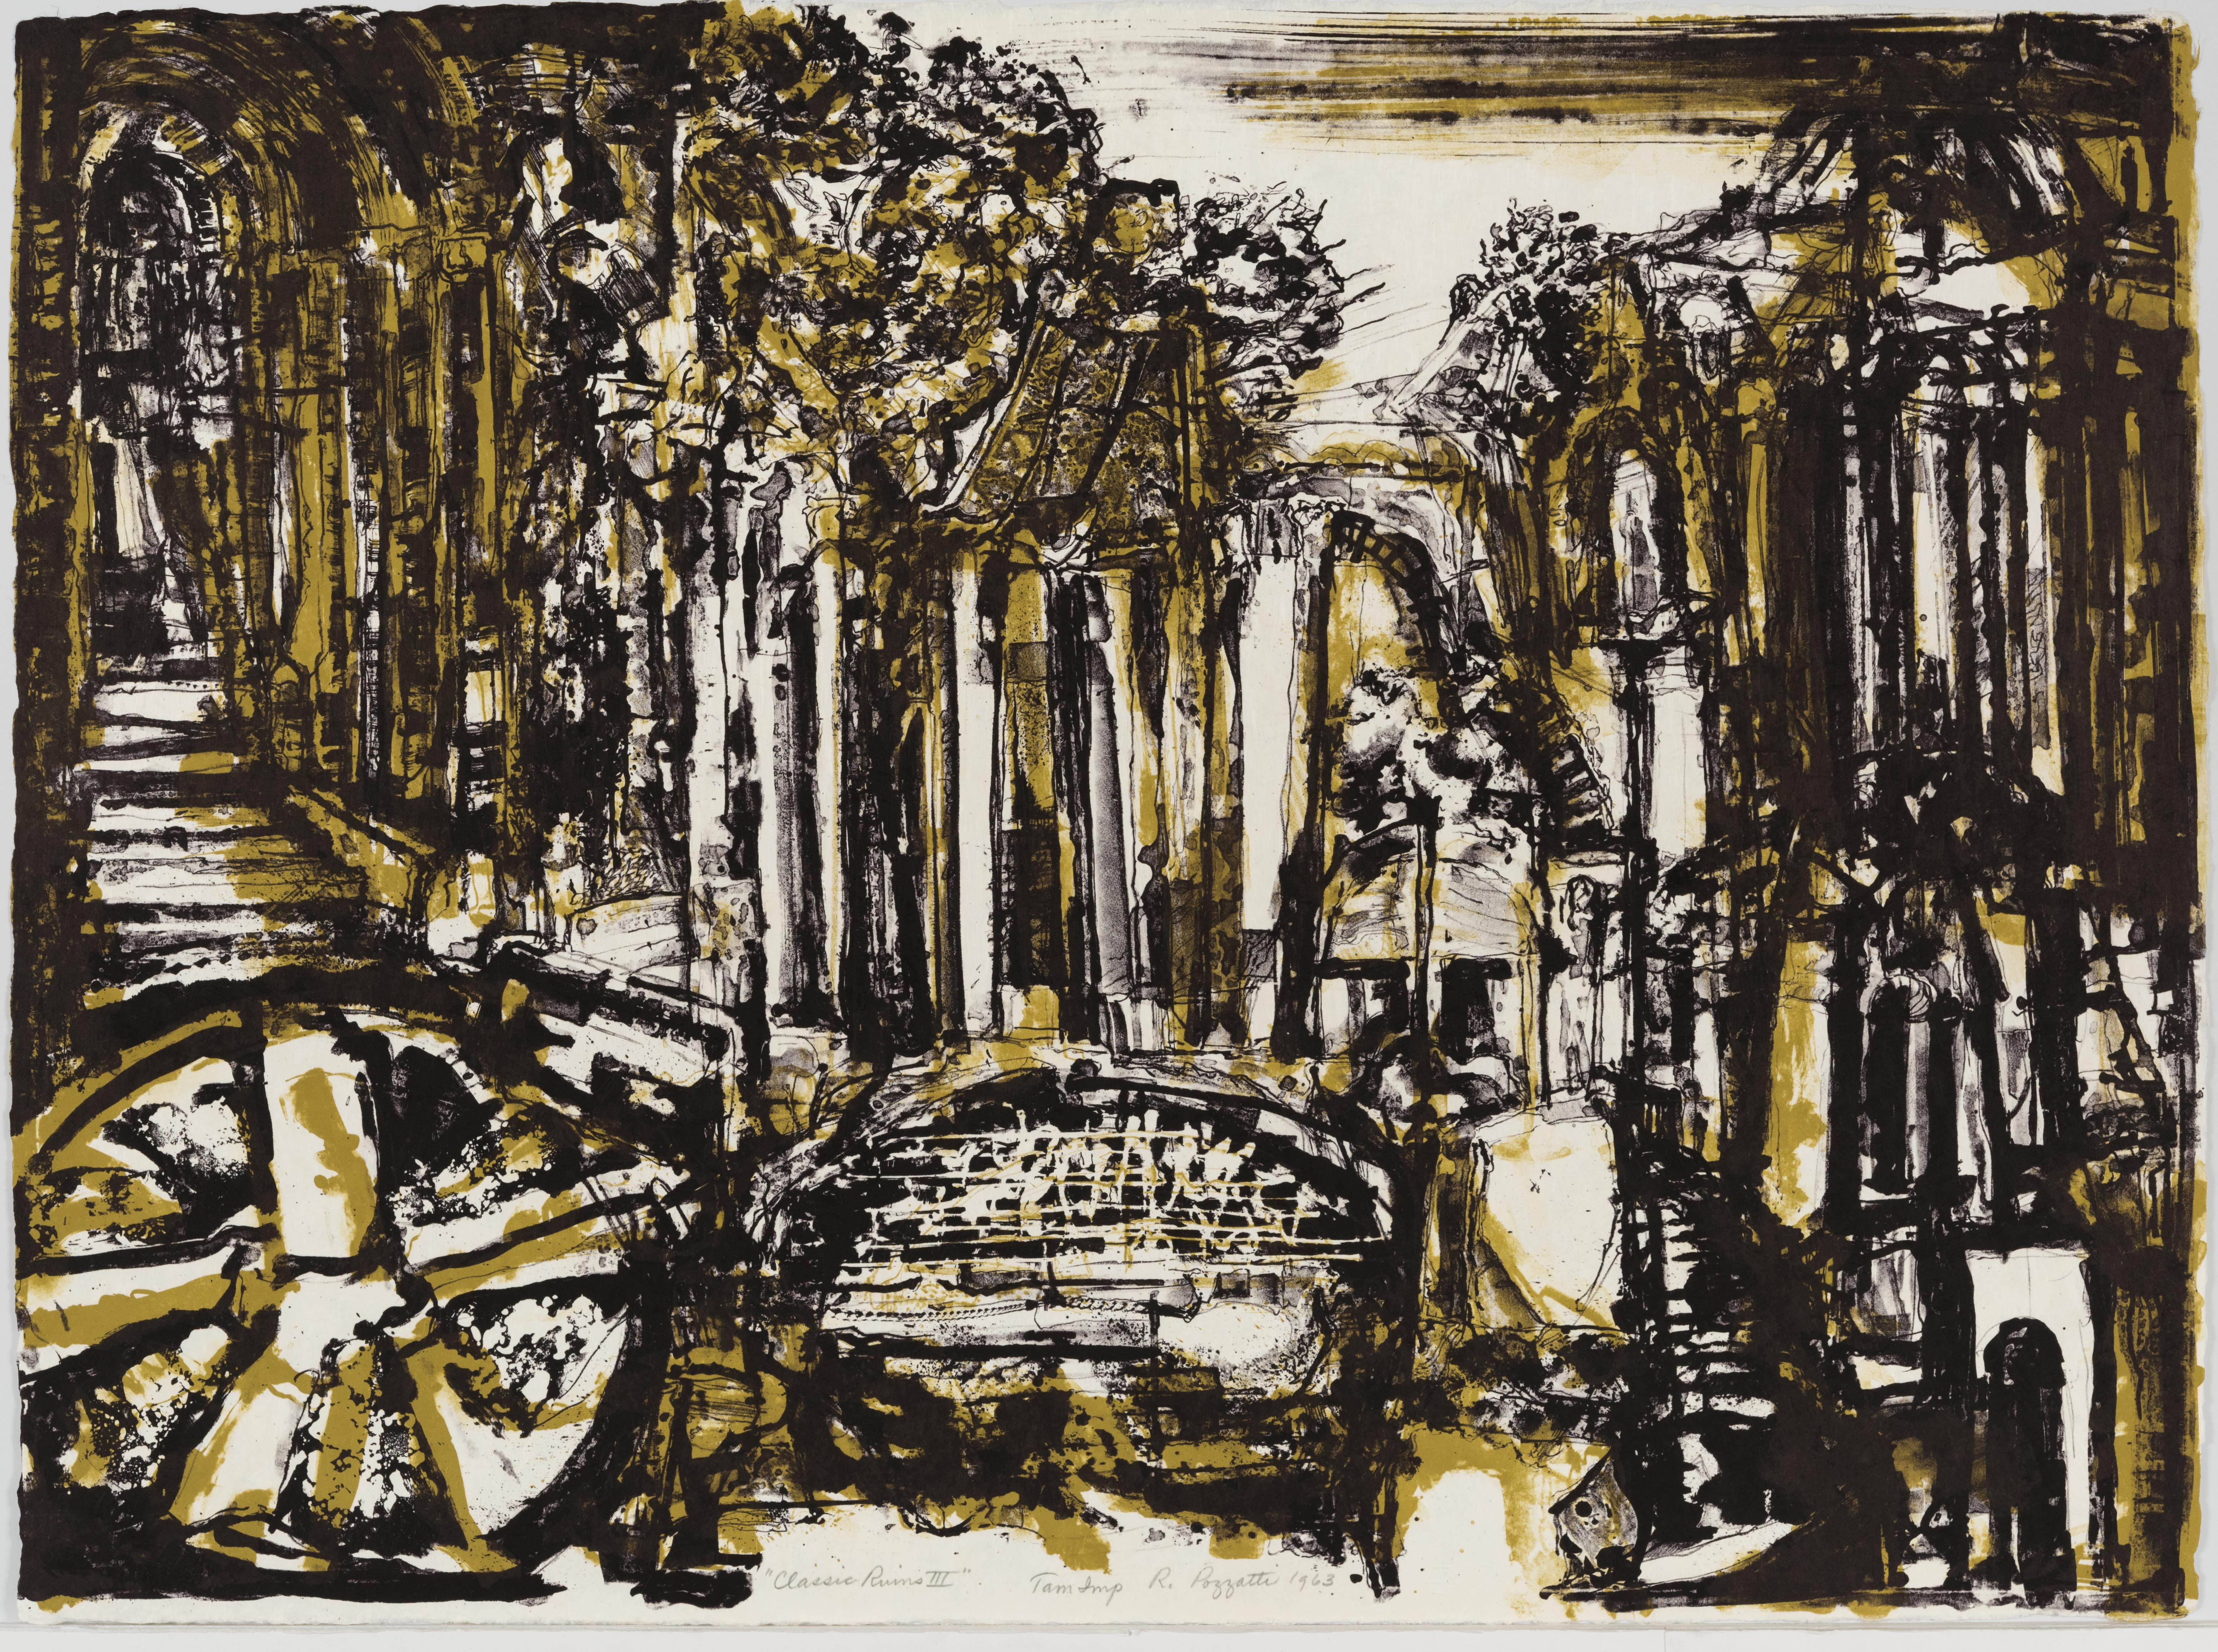 Rudy Pozzatti, Classic Ruins III, February 21-March 1, 1963